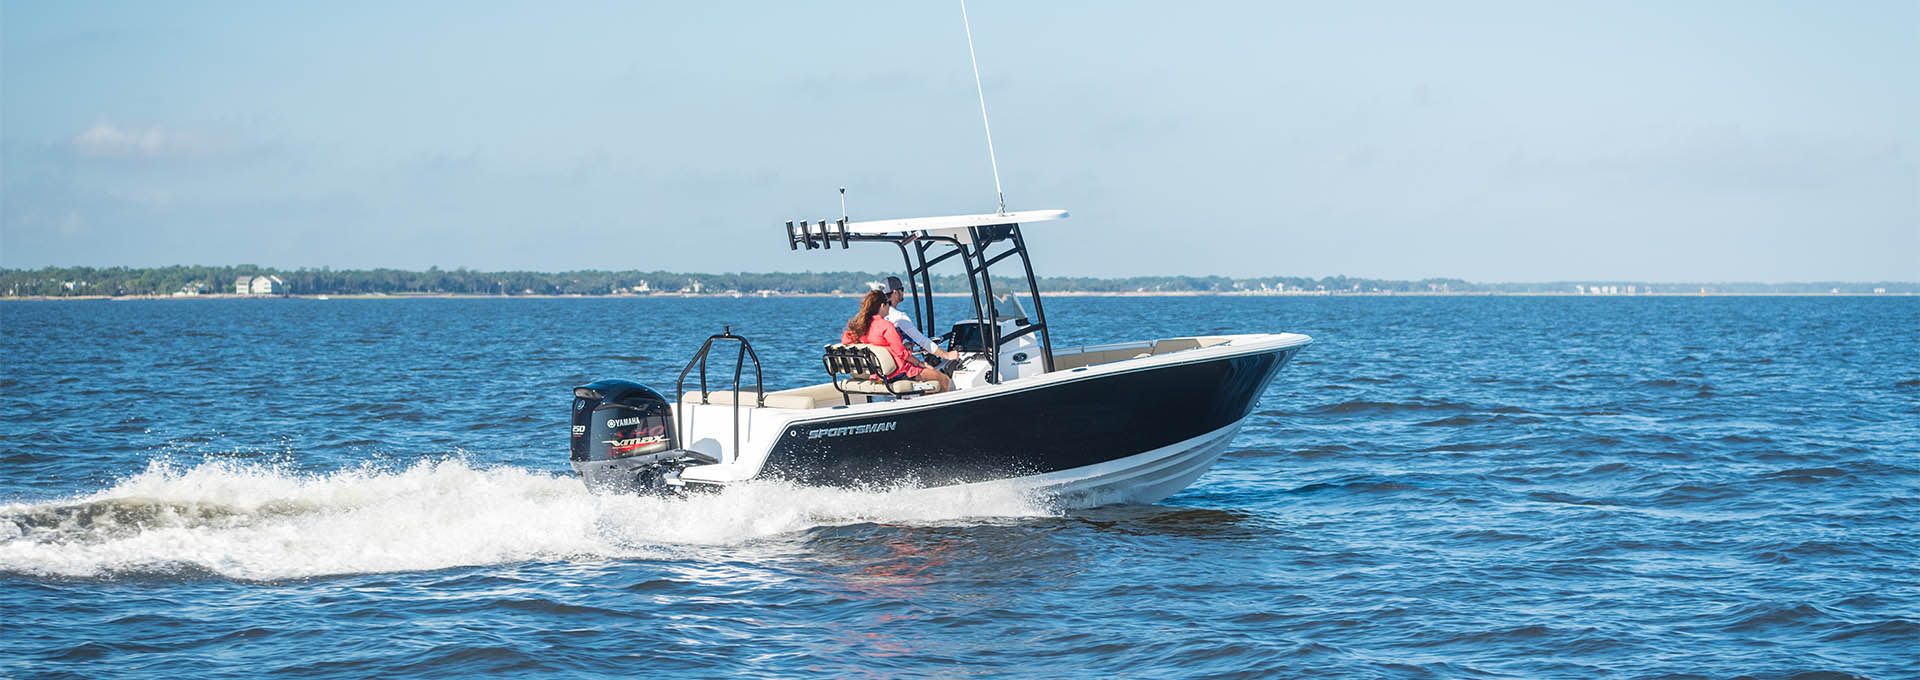 231 hero1 heritage 231 center console sportsman boats Sportsman 211 Heritage Live Well at panicattacktreatment.co